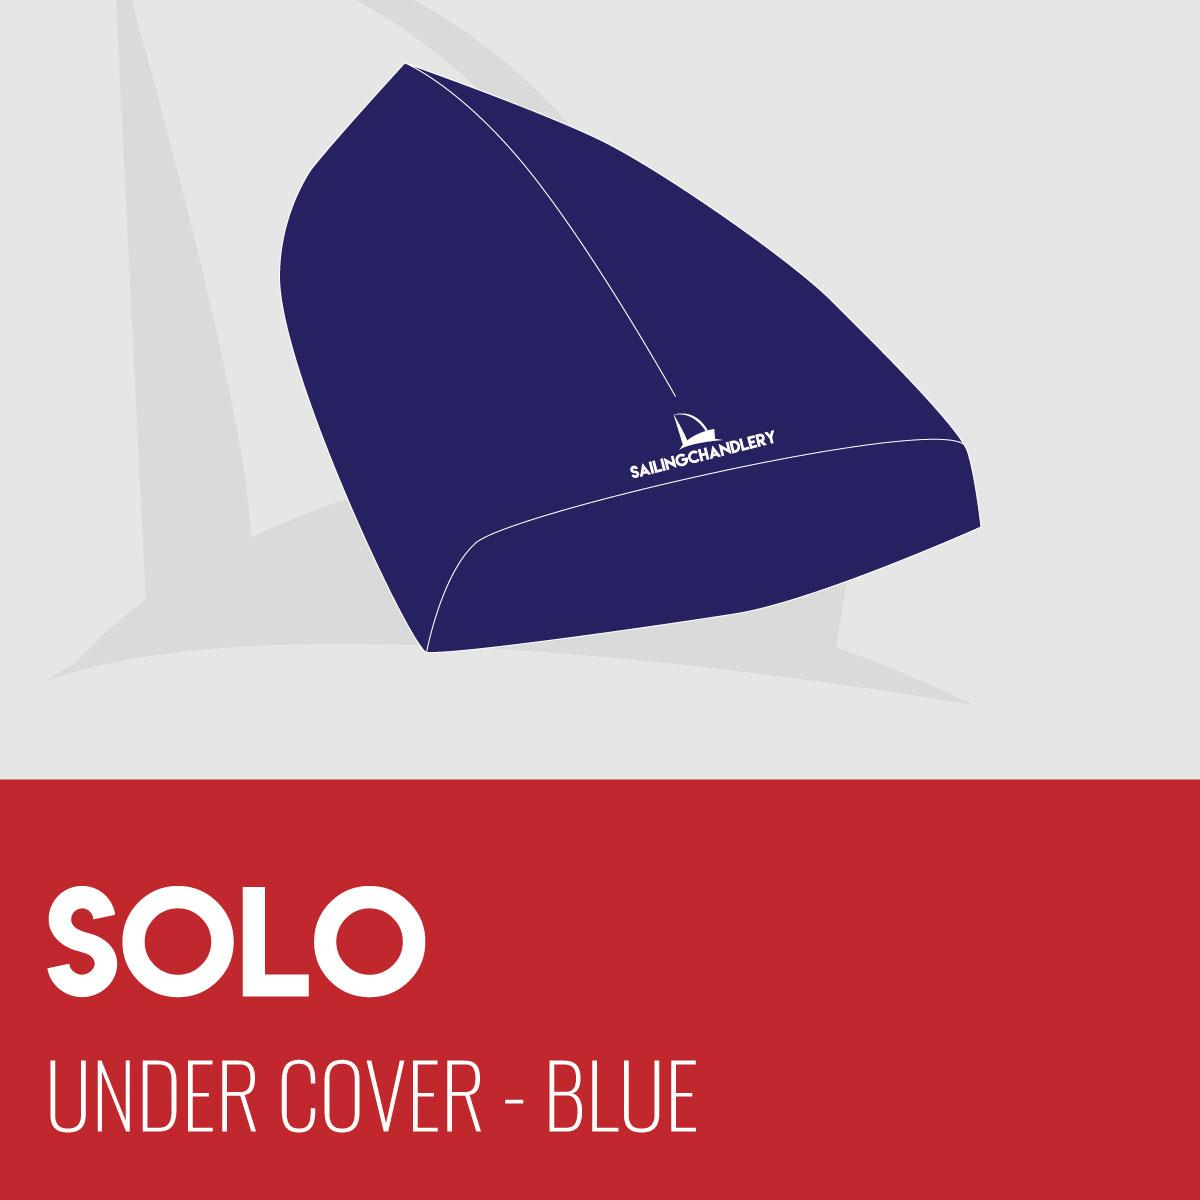 Solo Under Cover